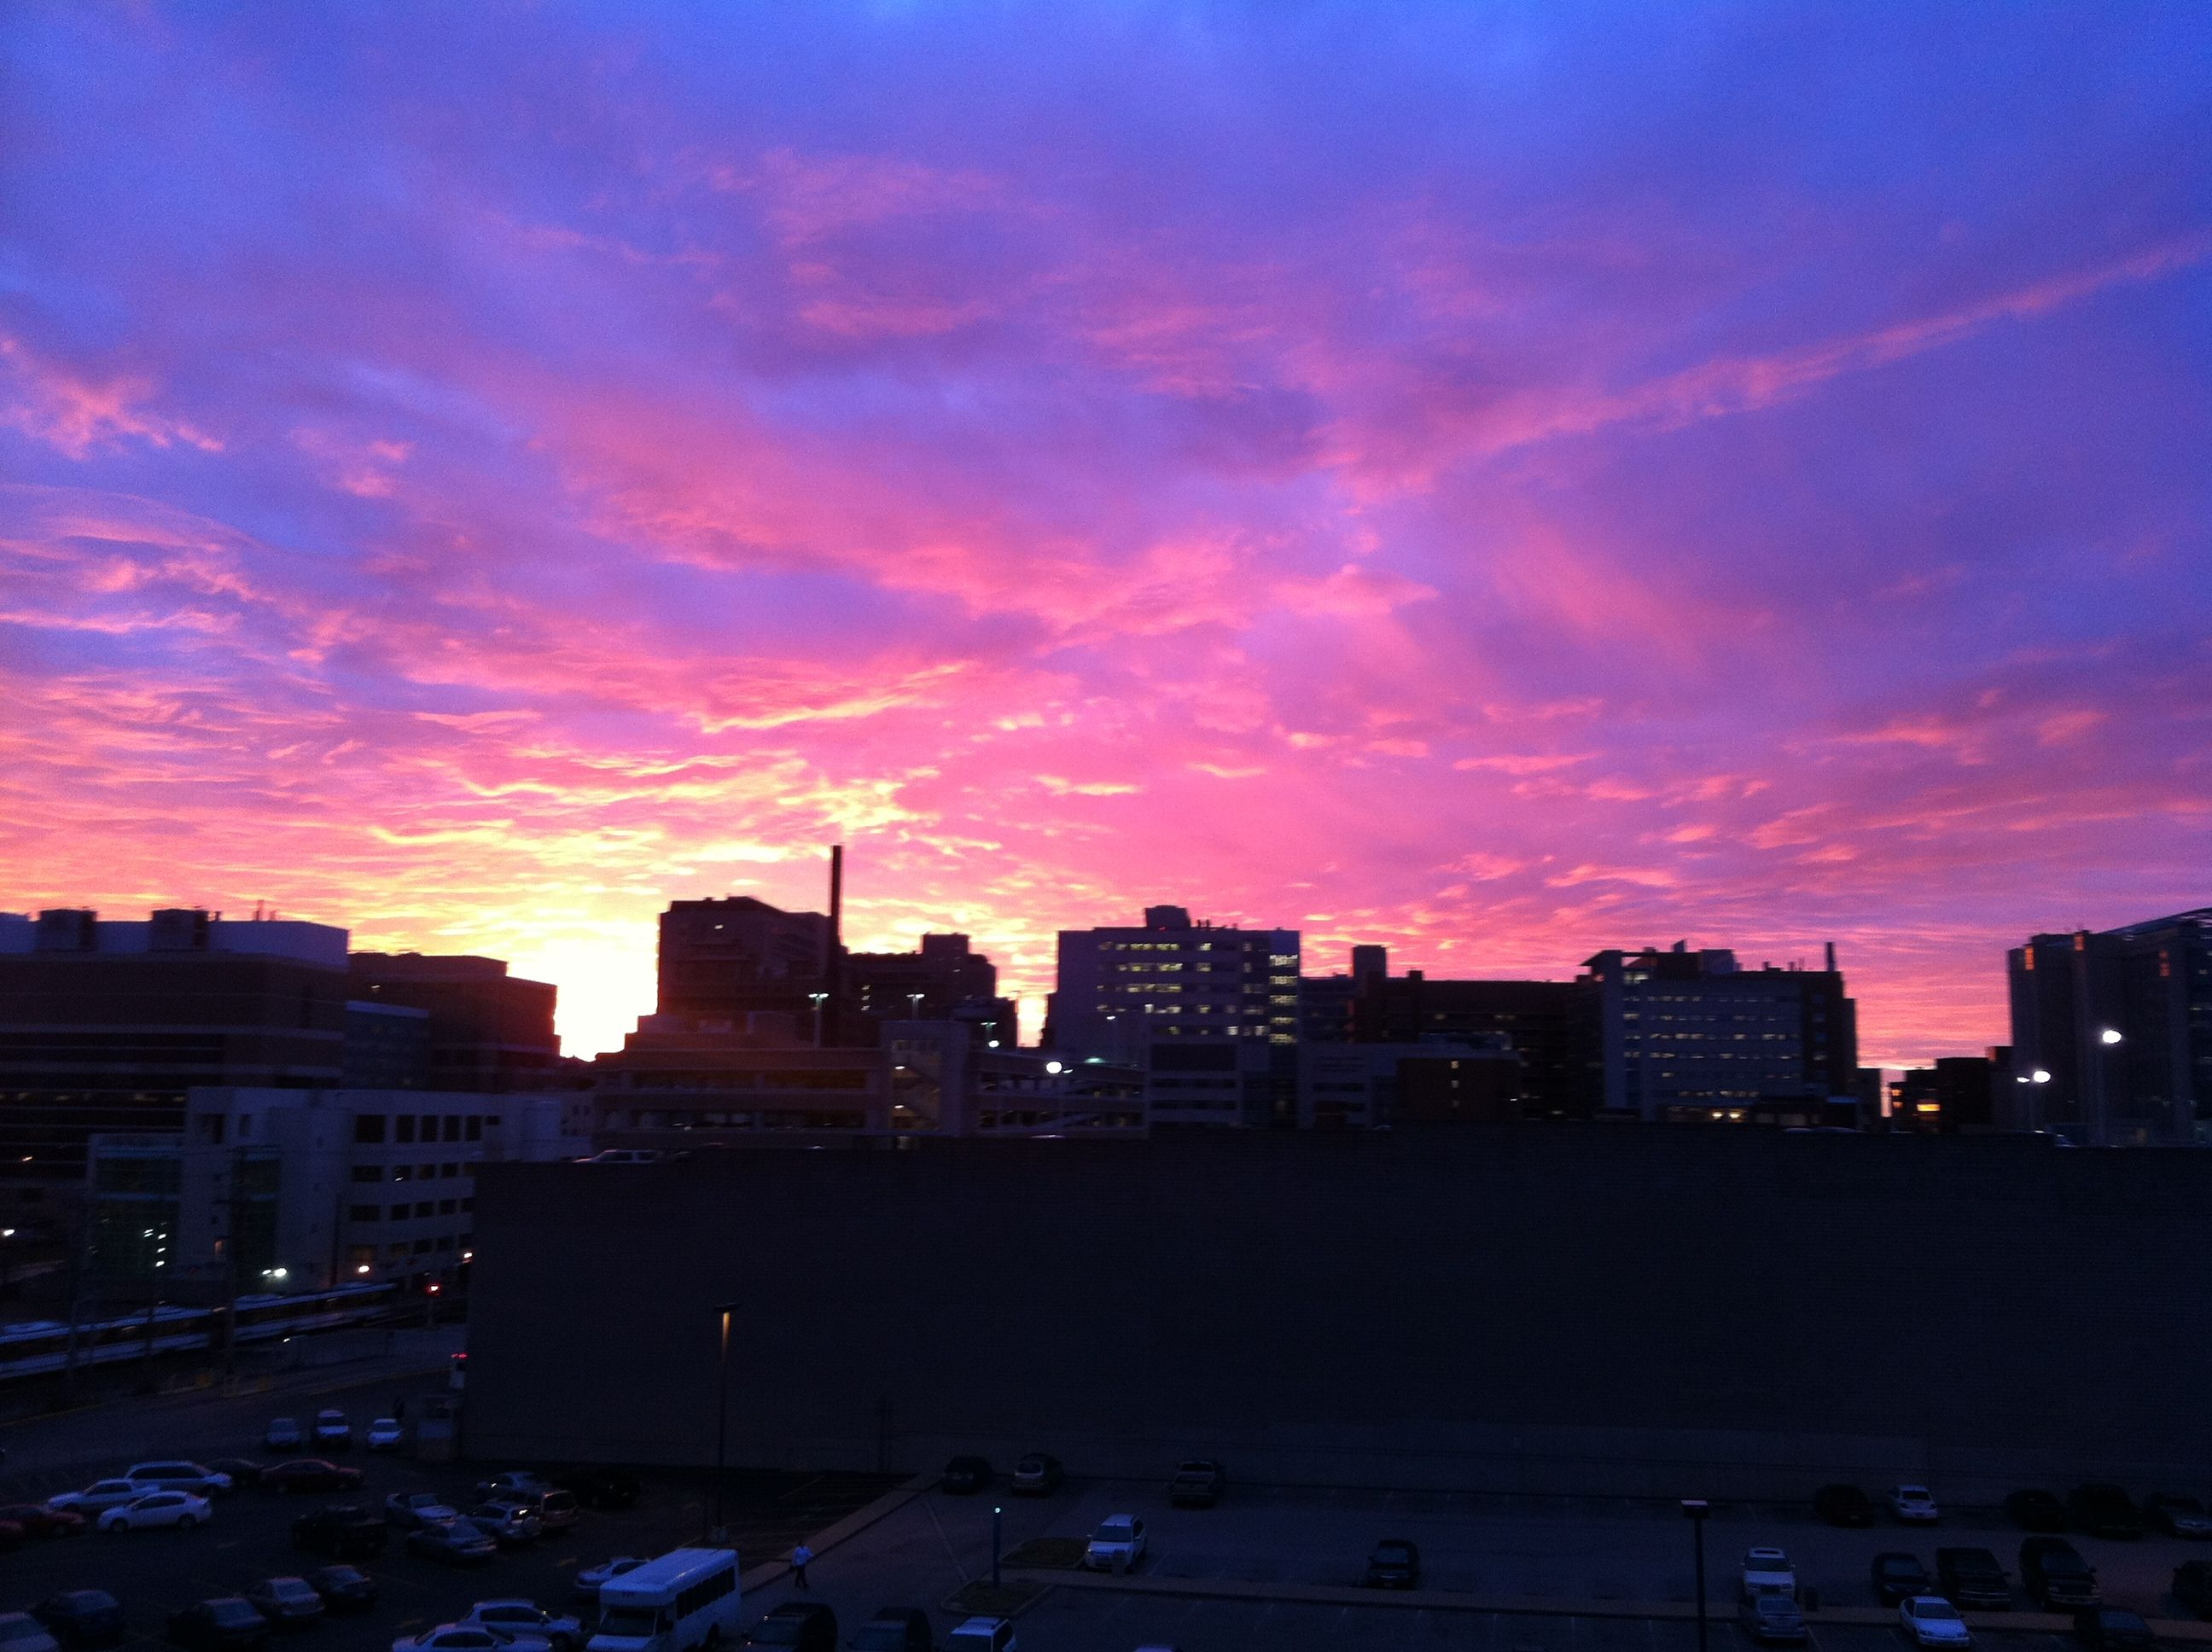 Sunset over BarnesJewish Hospital and Washington